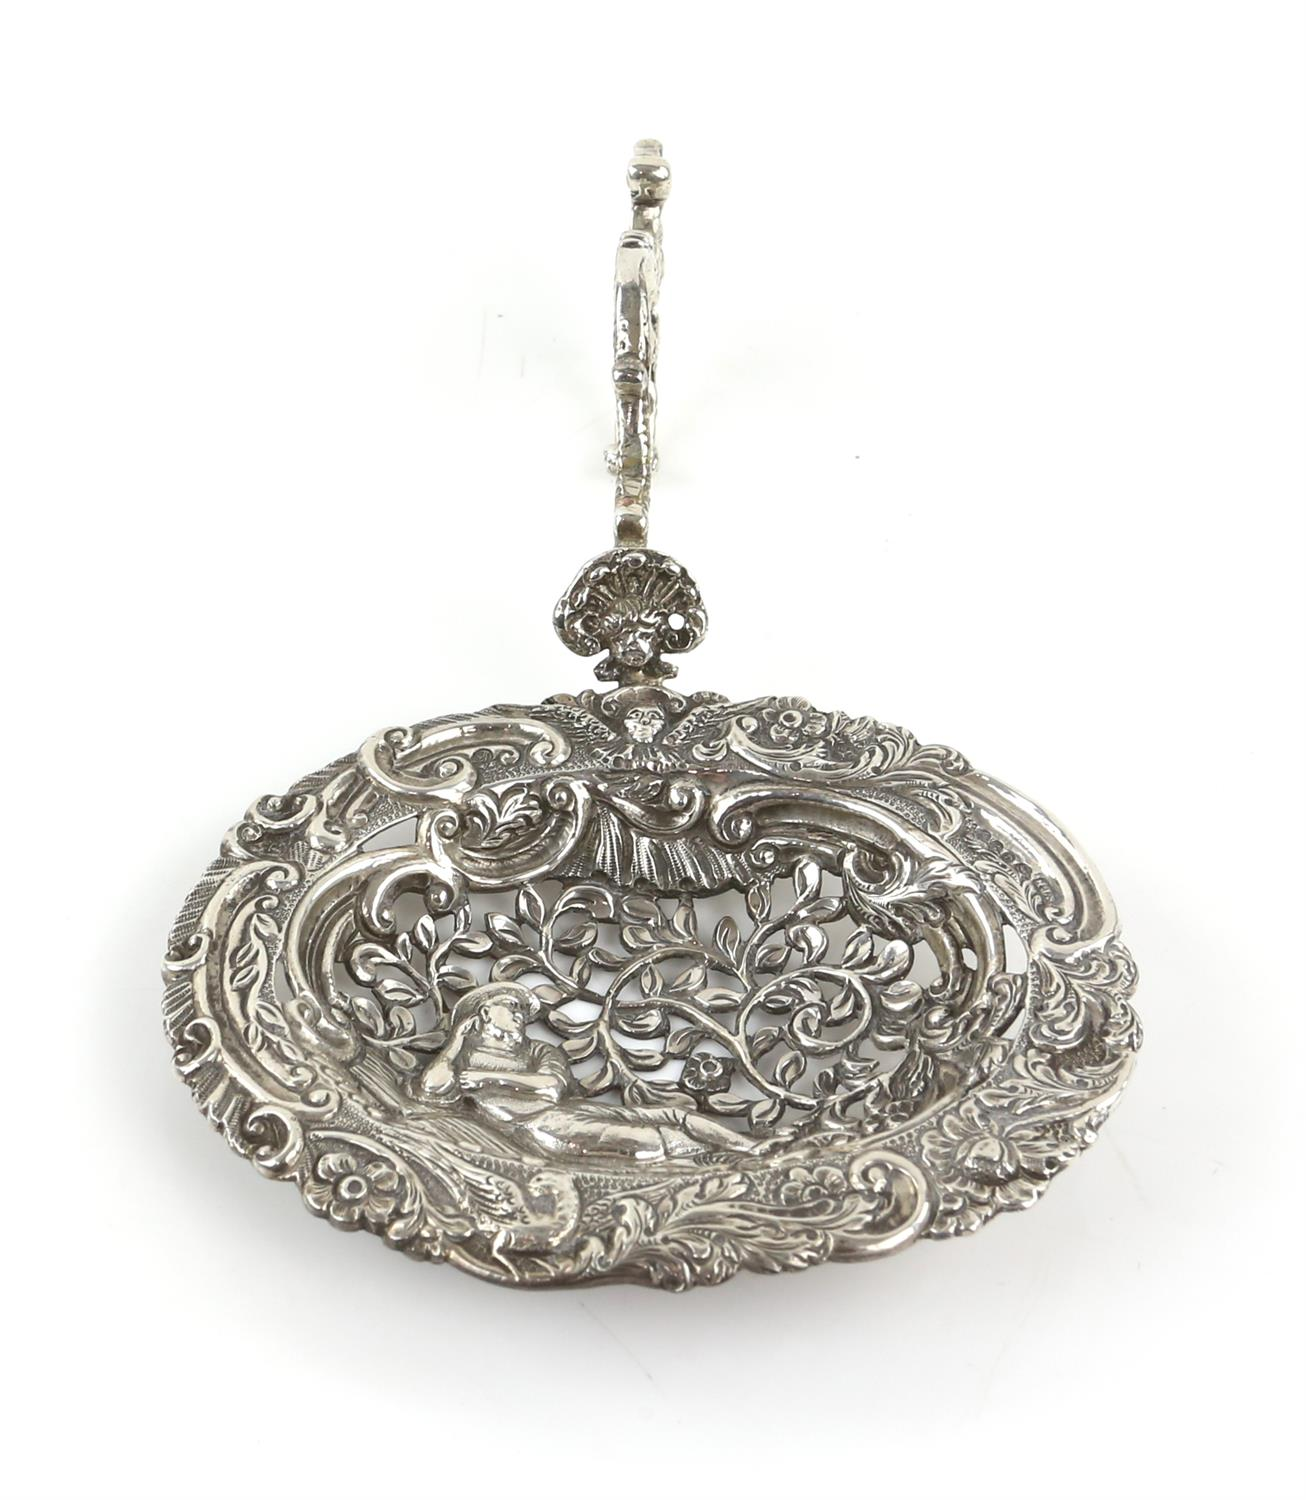 Large Continental silver bon bon sifter spoon with a man surrounded by foliage, import marks ETB - Image 5 of 5